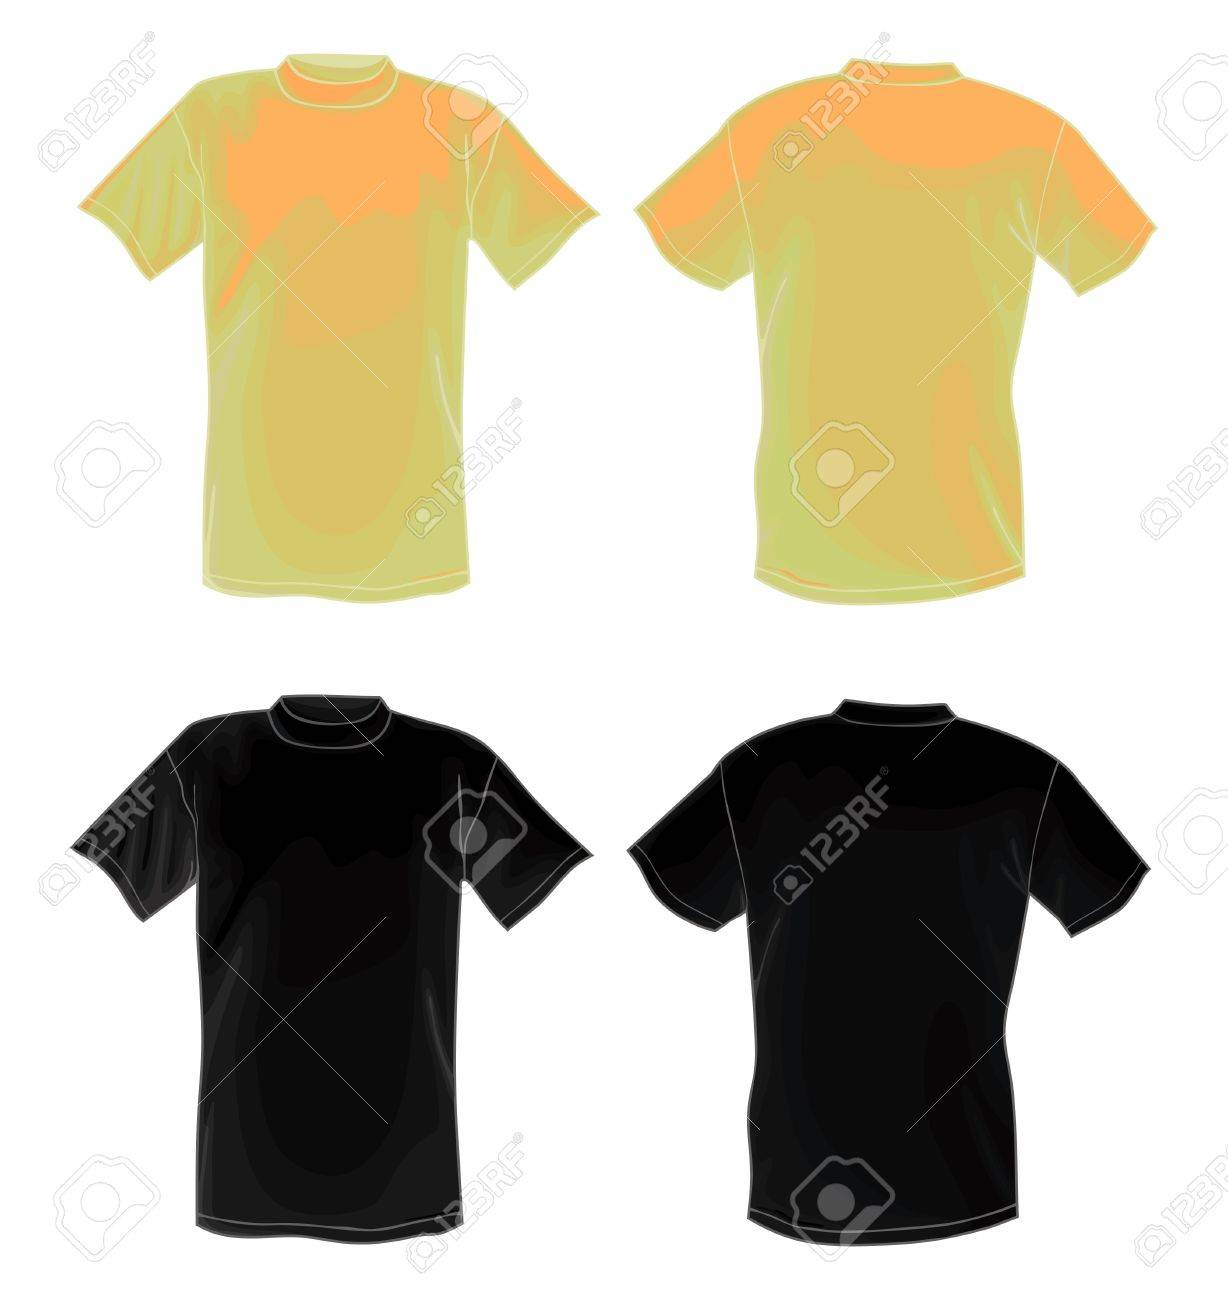 Black t shirt back and front - Yellow And Black Vector T Shirt Design Template Front Back Stock Vector